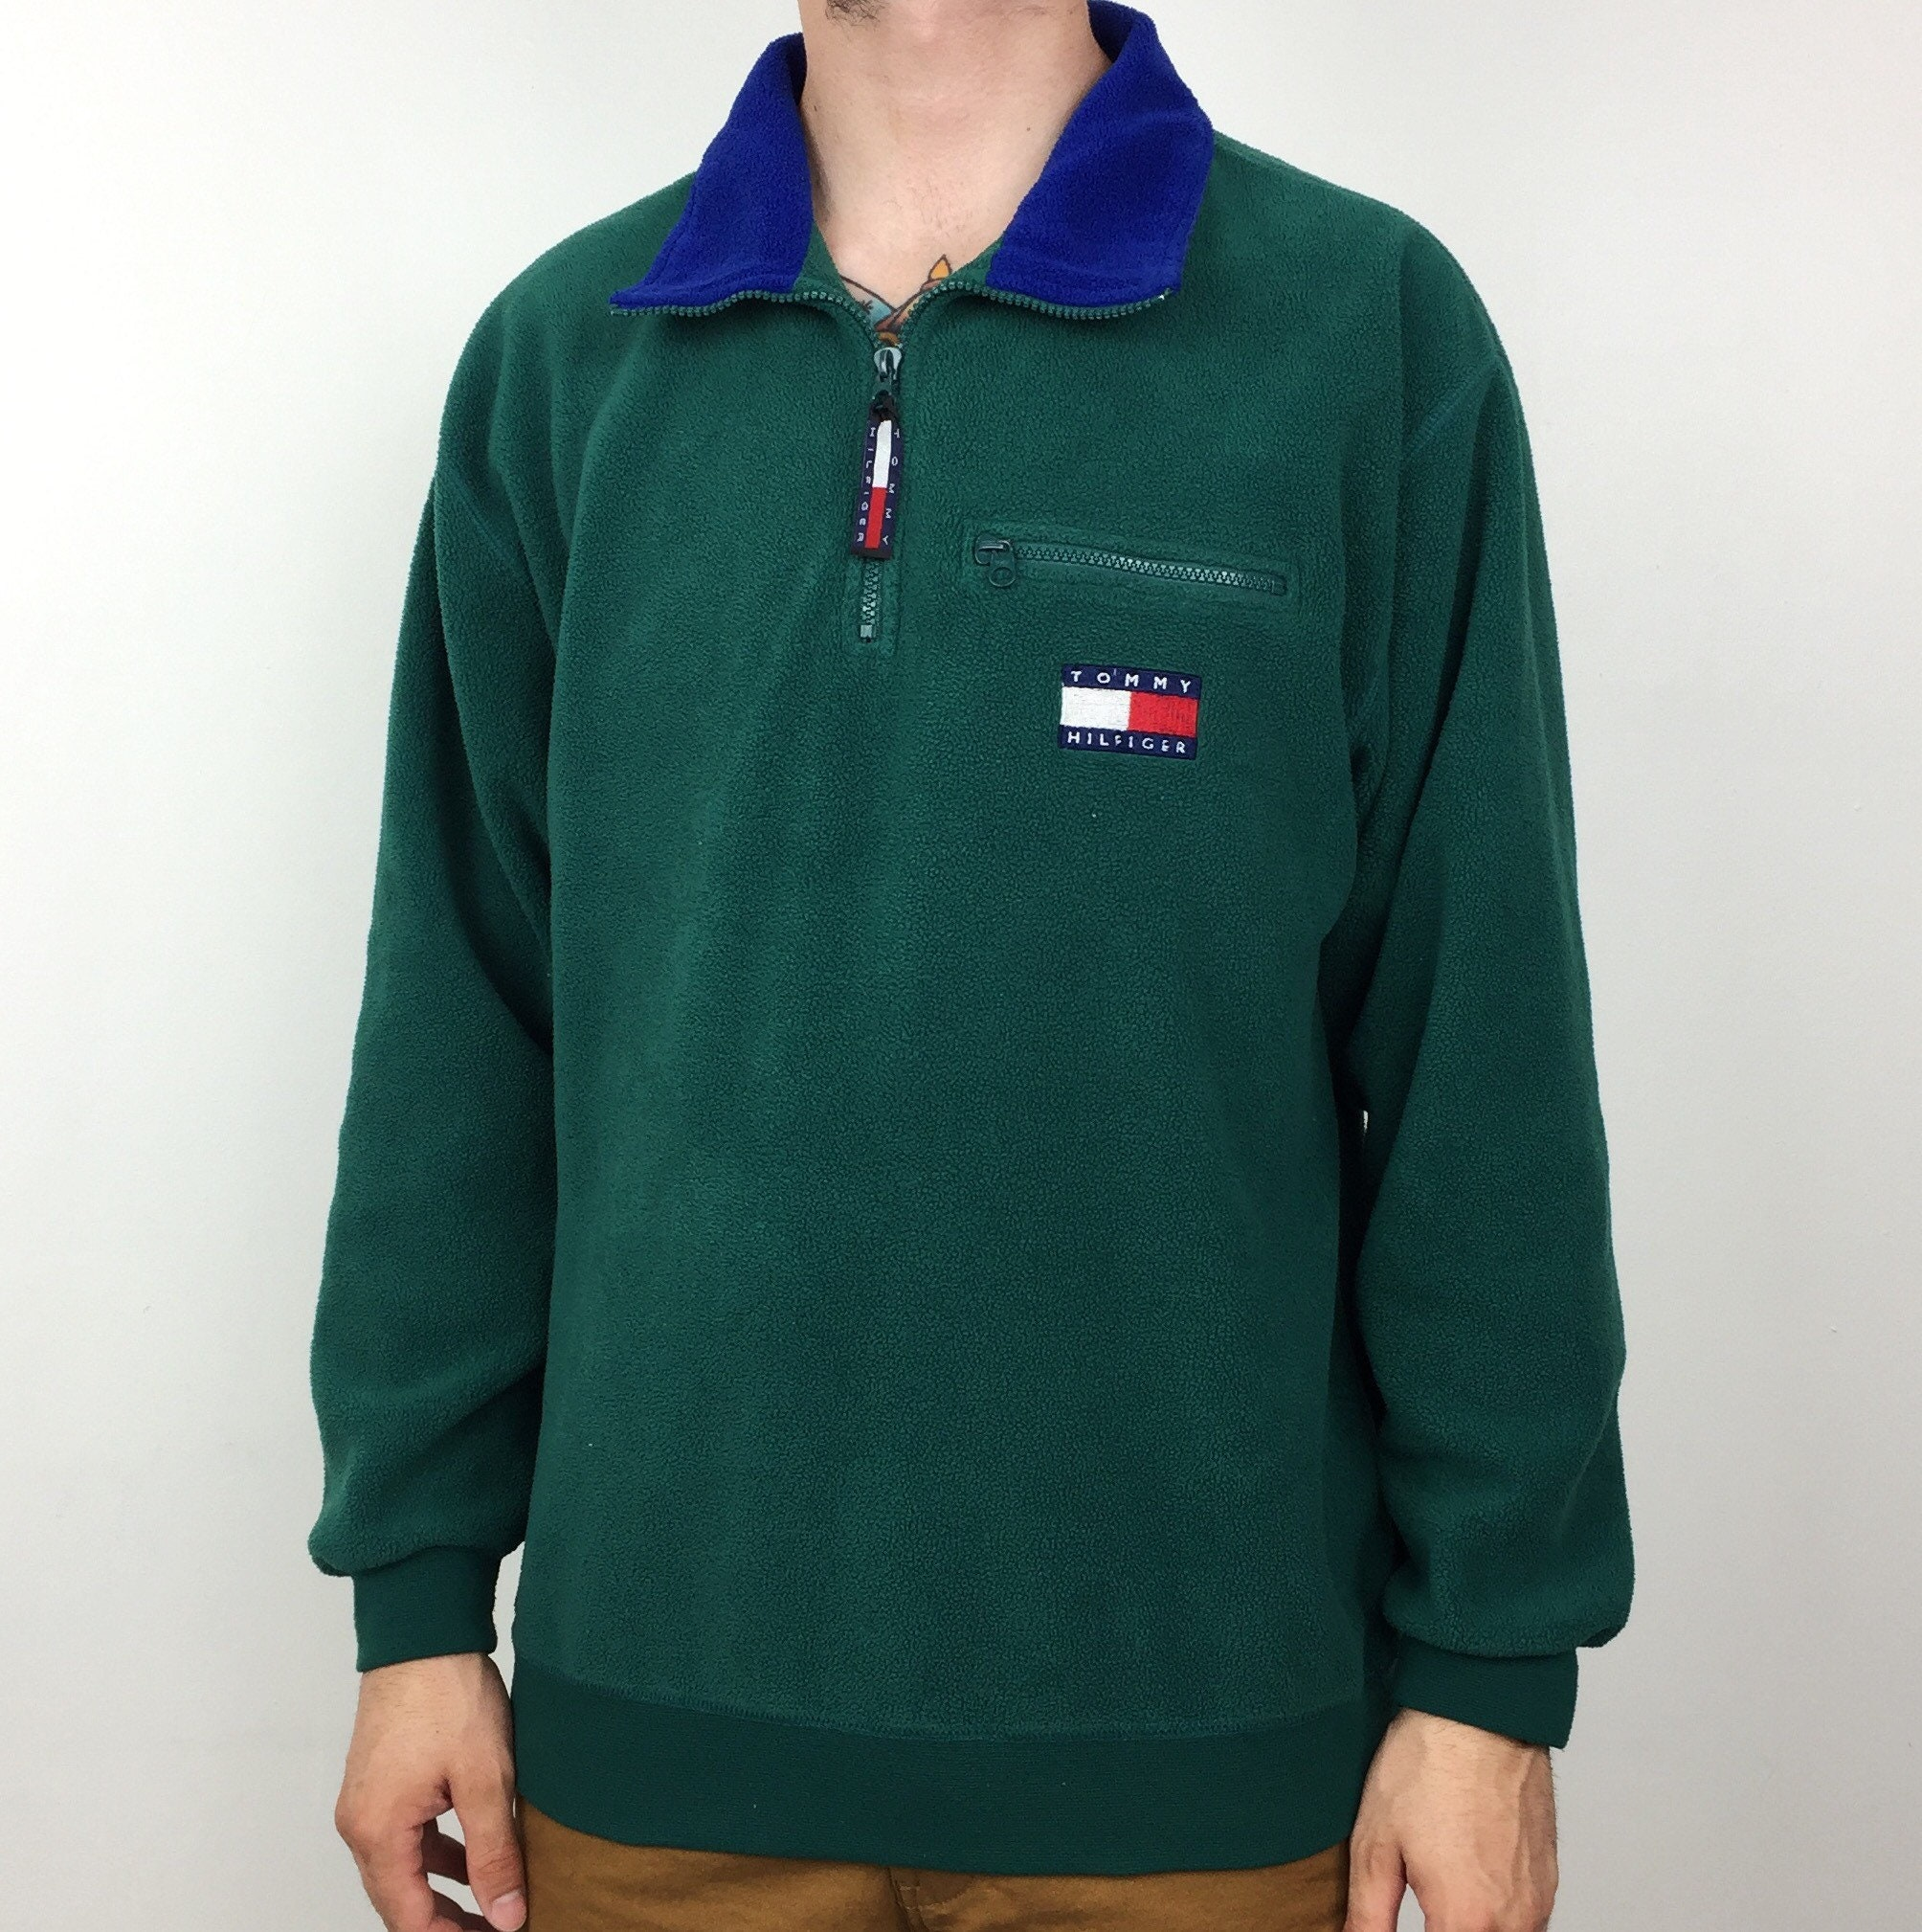 7824dcbd Vintage 90s Tommy Hilfiger big flag logo patch embroidered forest green  pullover quarter zip fleece jacket - Size M